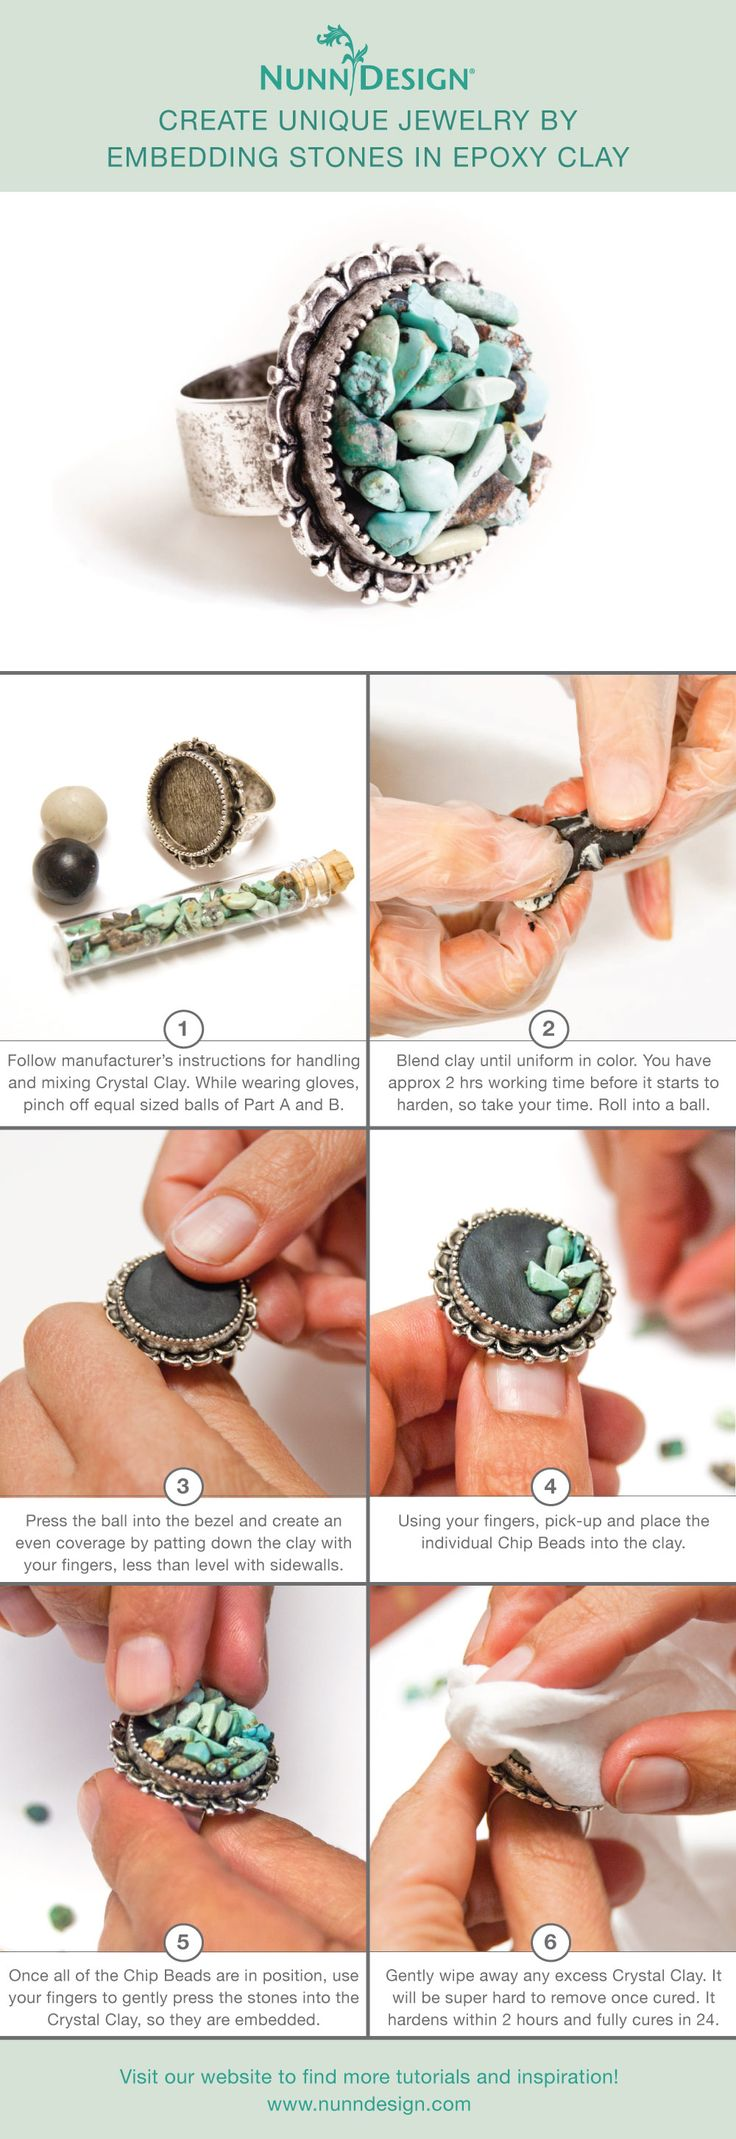 This tutorial on Embedding Stones walks you through the simple steps of embedding chip beads into Crystal Clay.